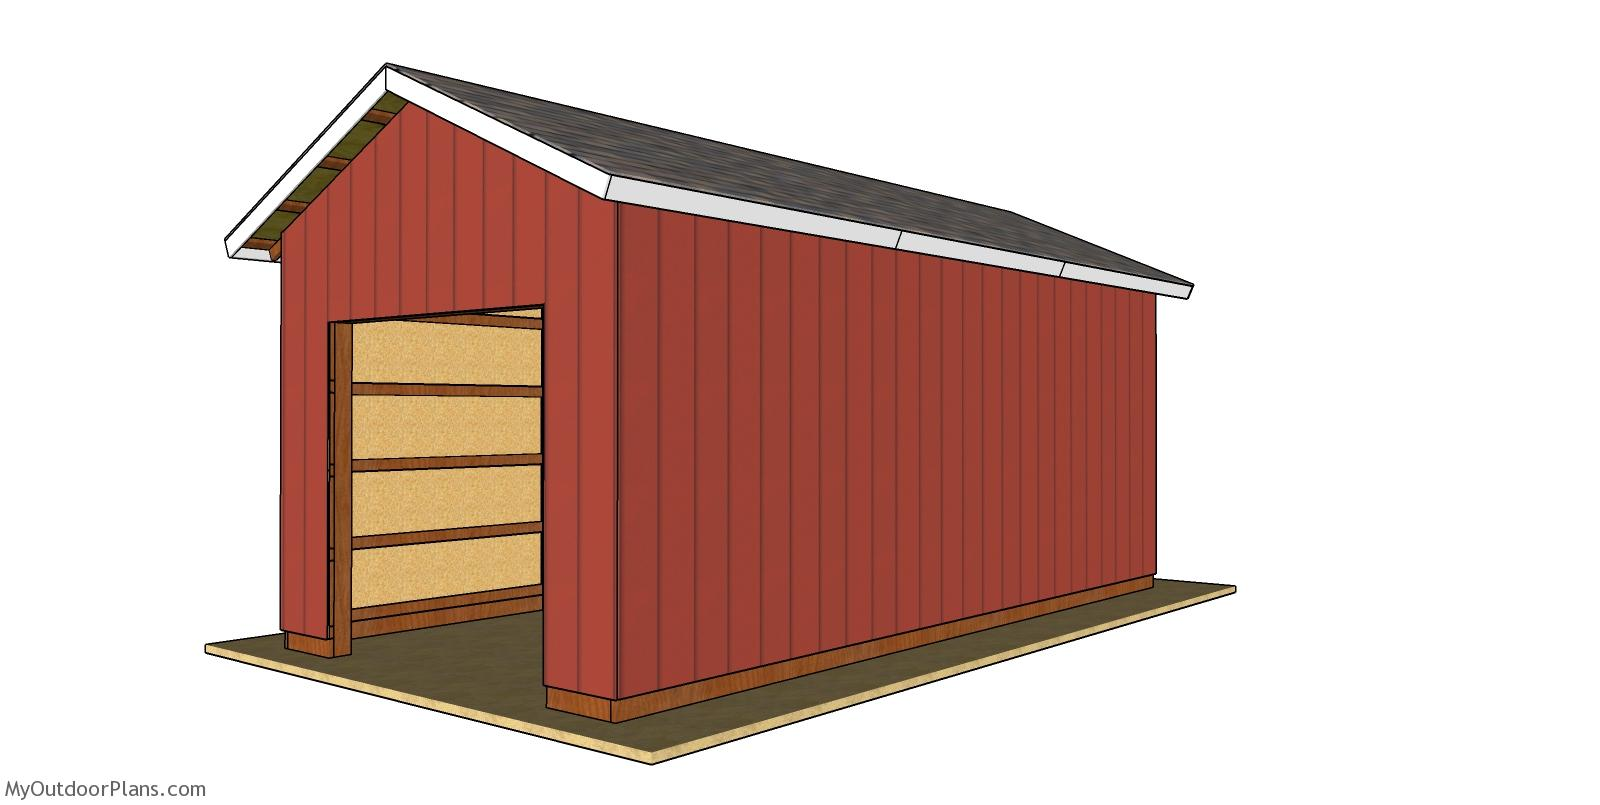 12x24 Pole Barn Plans - Free PDF Download